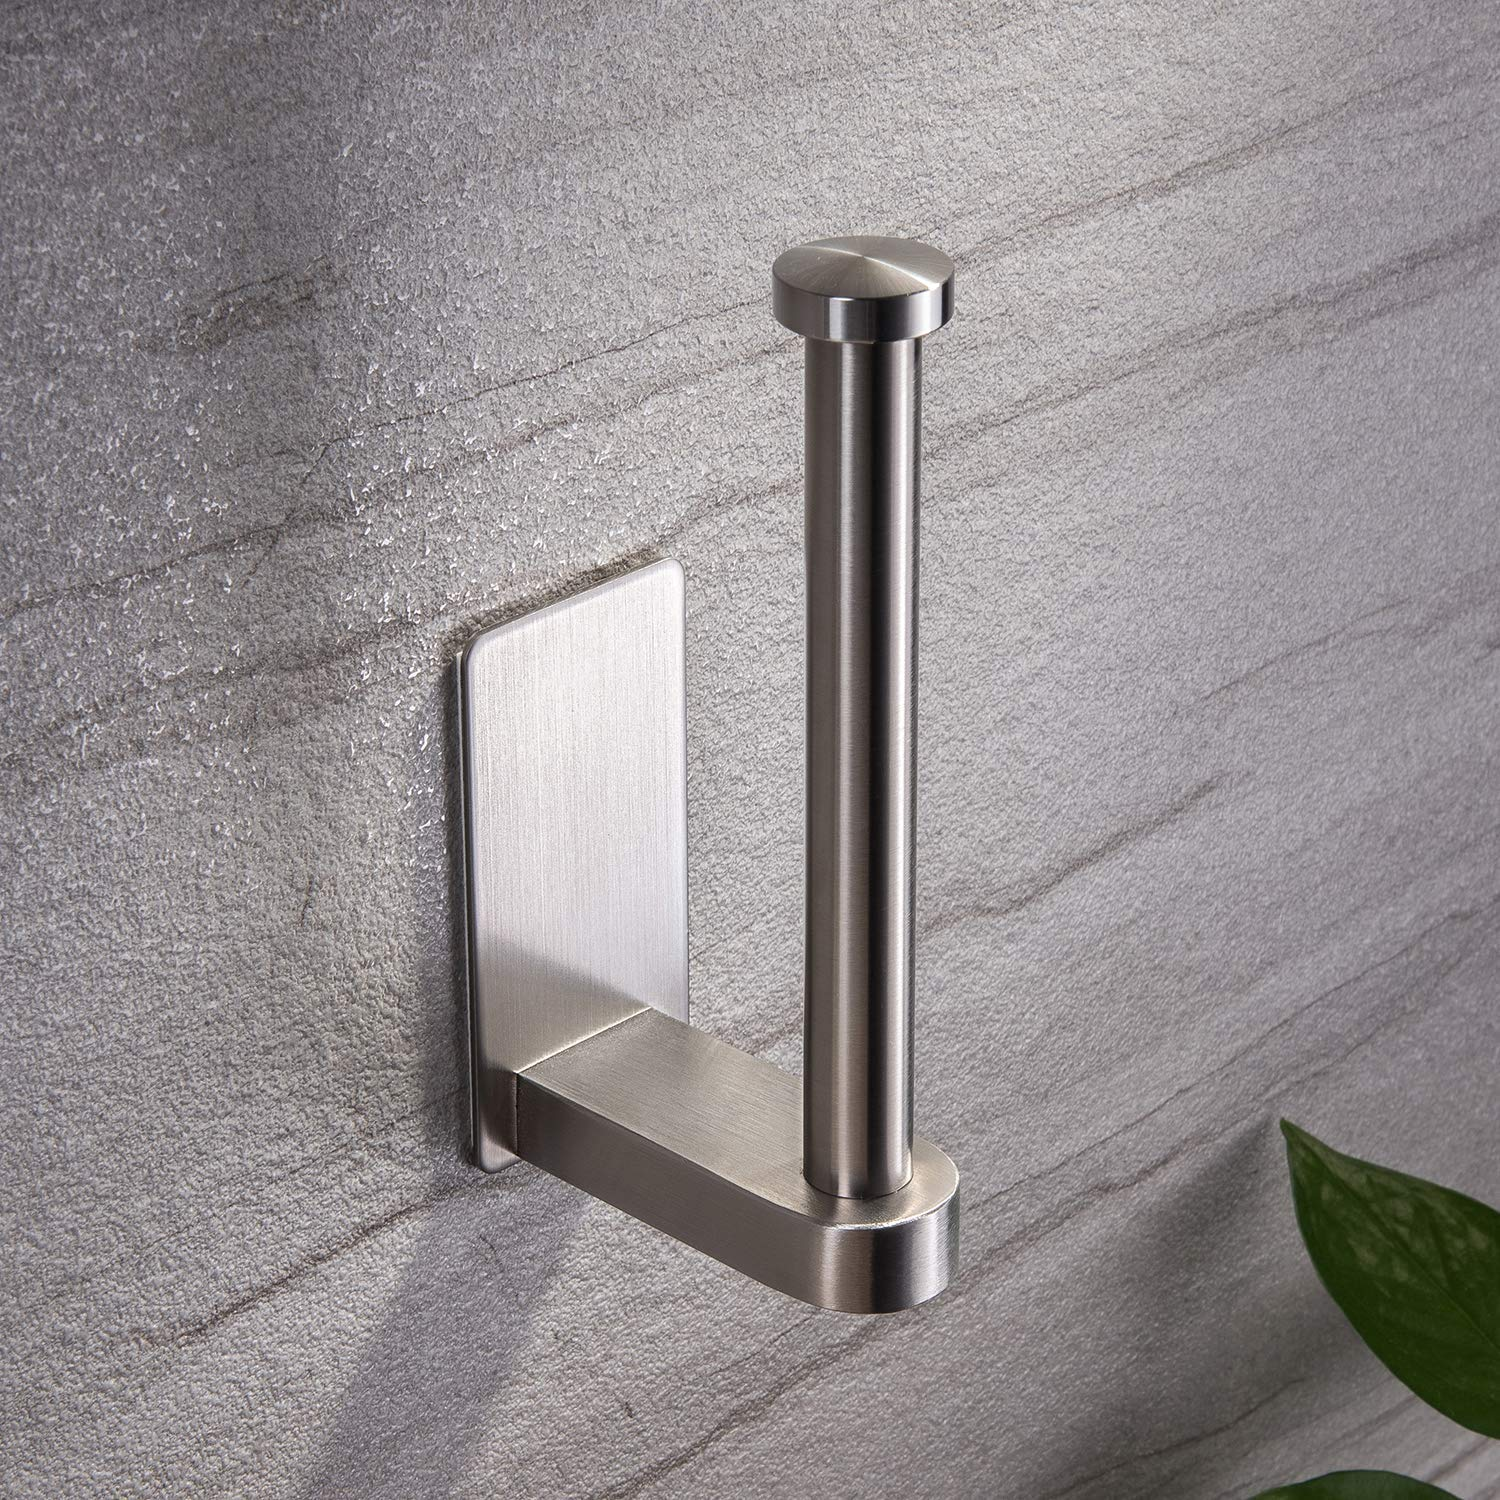 YIGII Self Adhesive Toilet Paper Holder - Bathroom Toilet Paper Holder Stand no Drilling Stainless Steel Brushed by YIGII